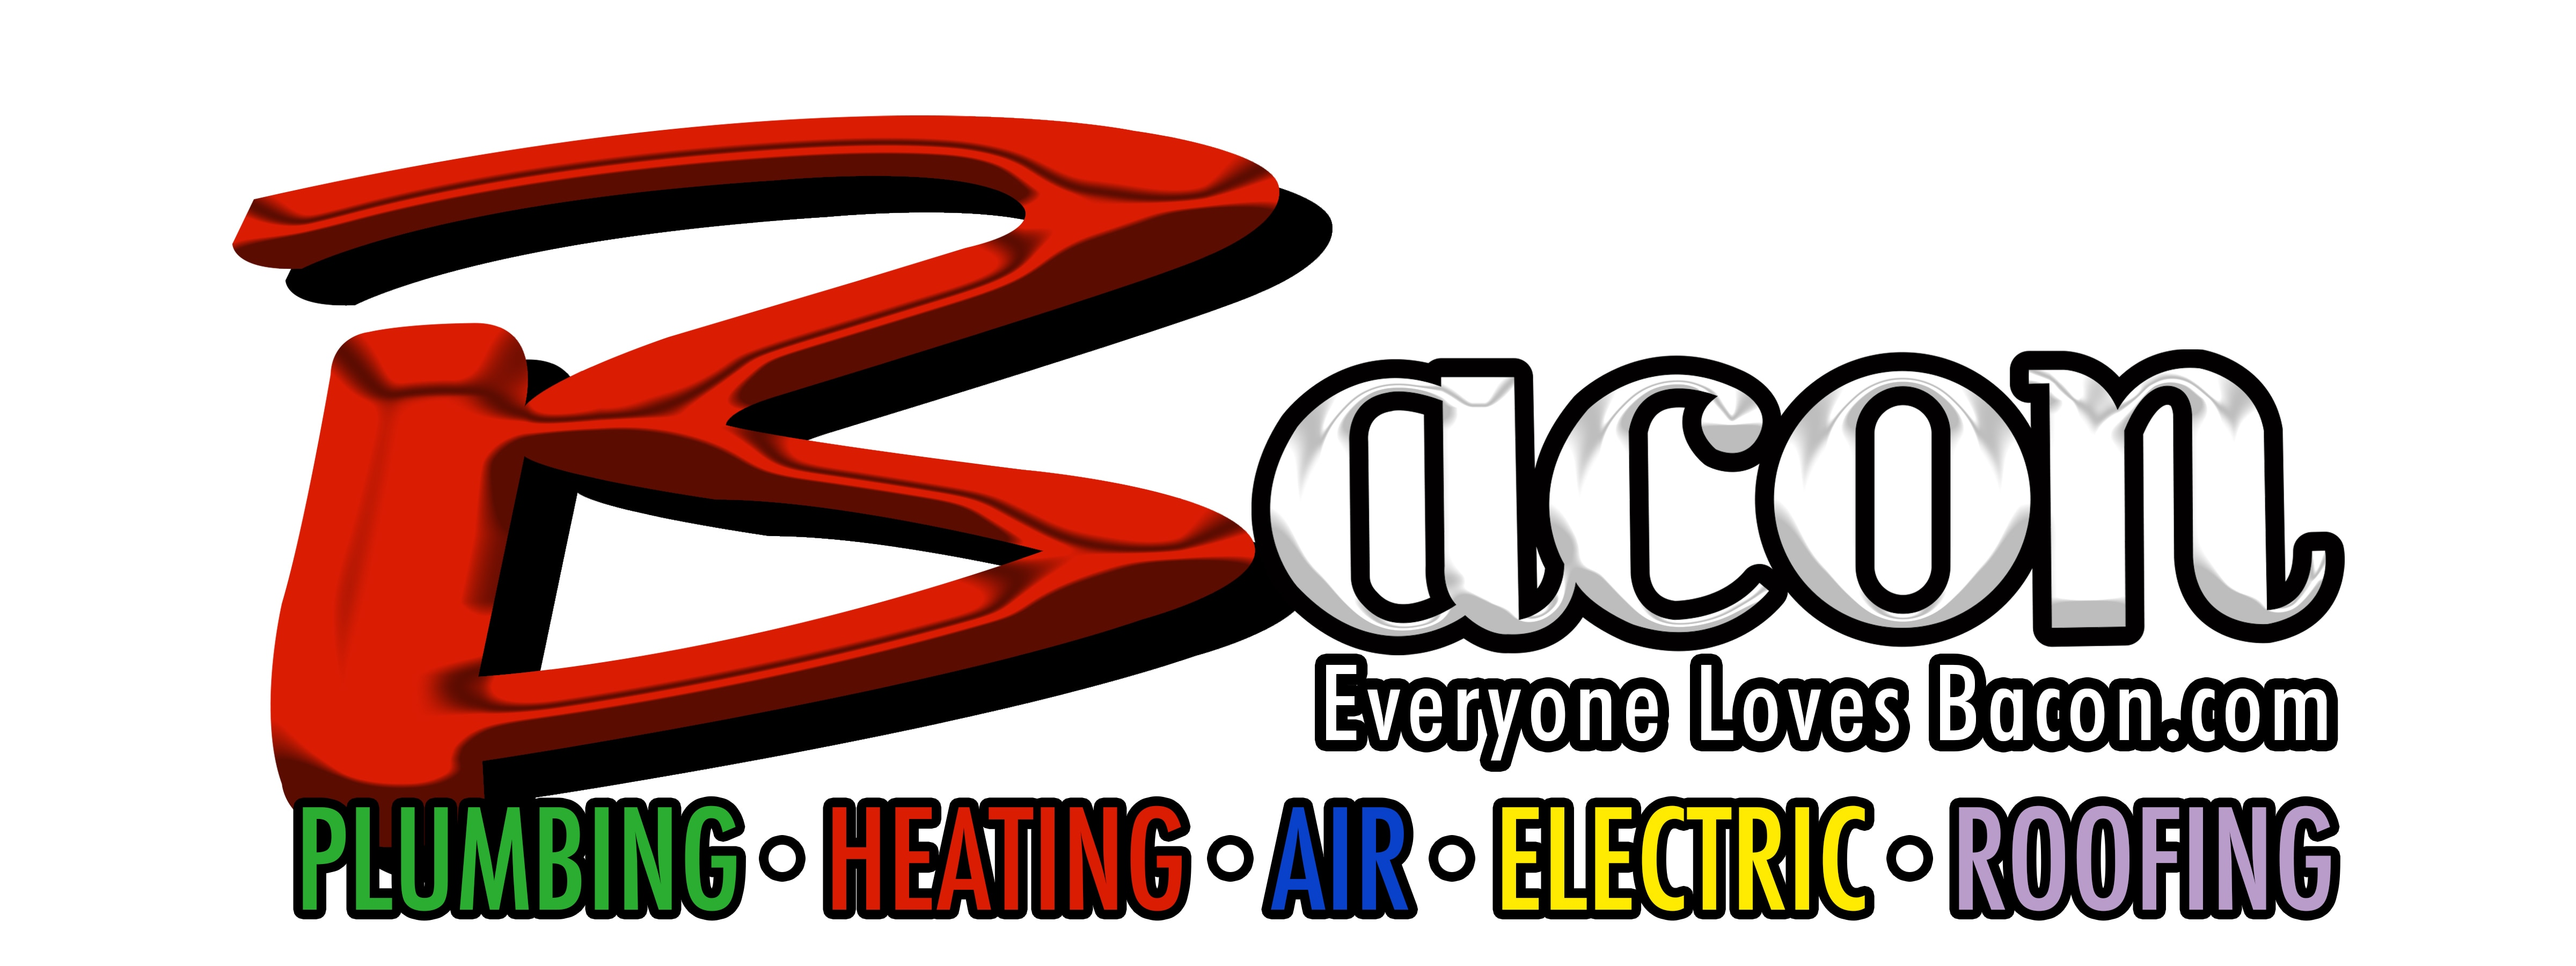 Bacon Plumbing, Heating, Air, Electric, Roofing logo